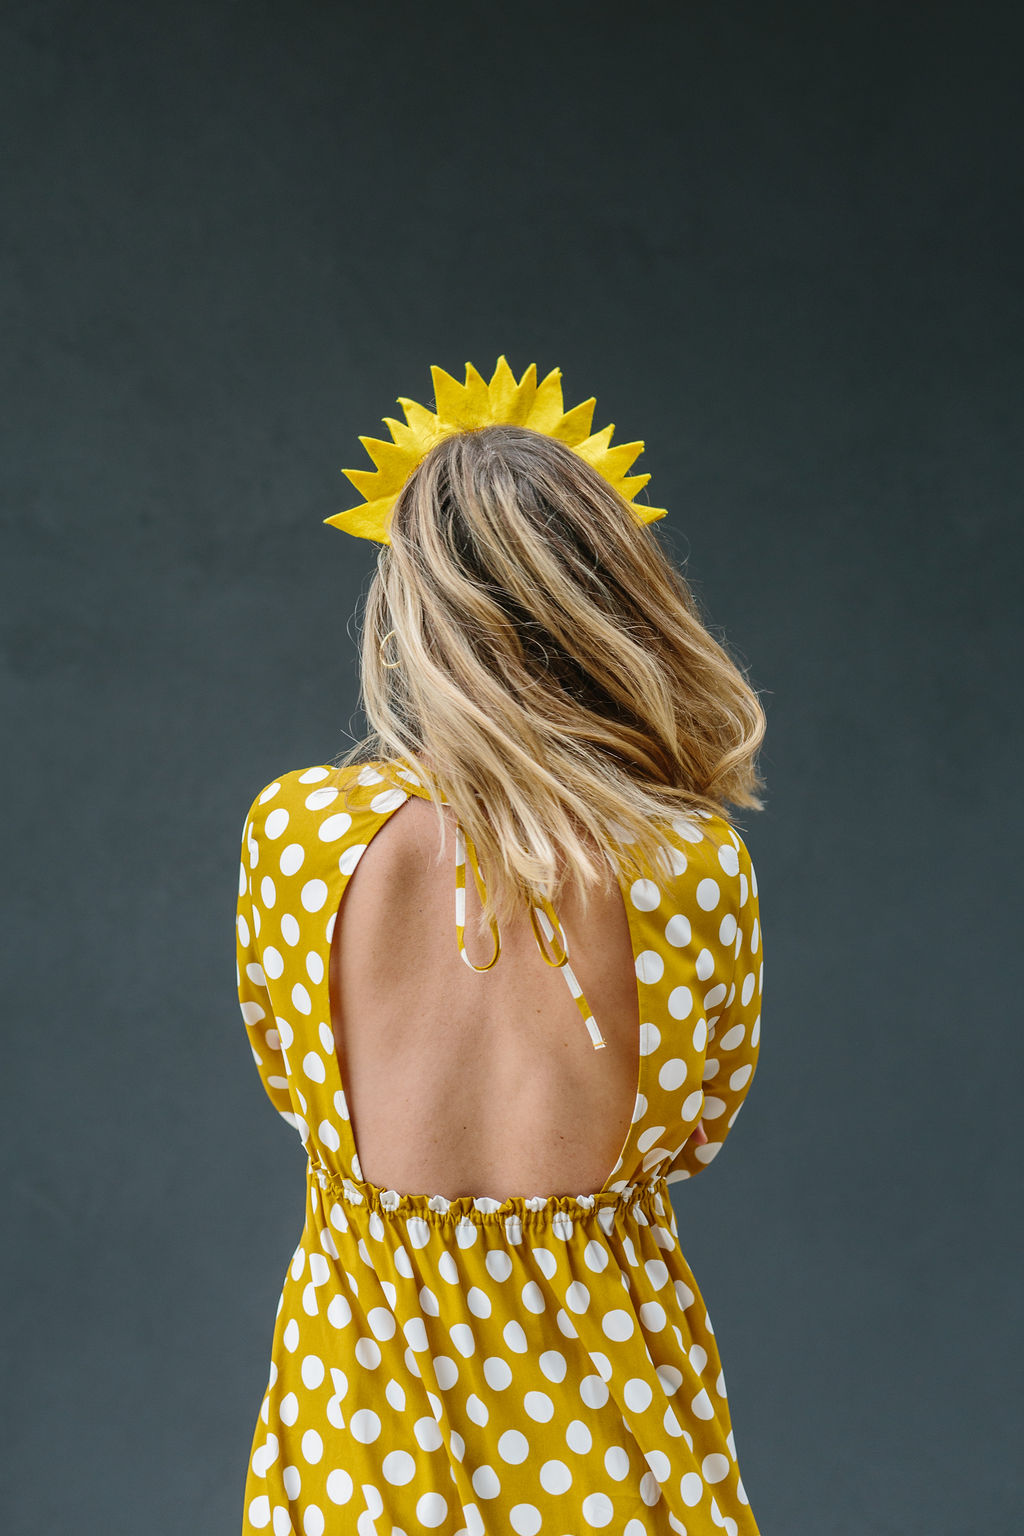 Showing the back of the dress for the sun costume